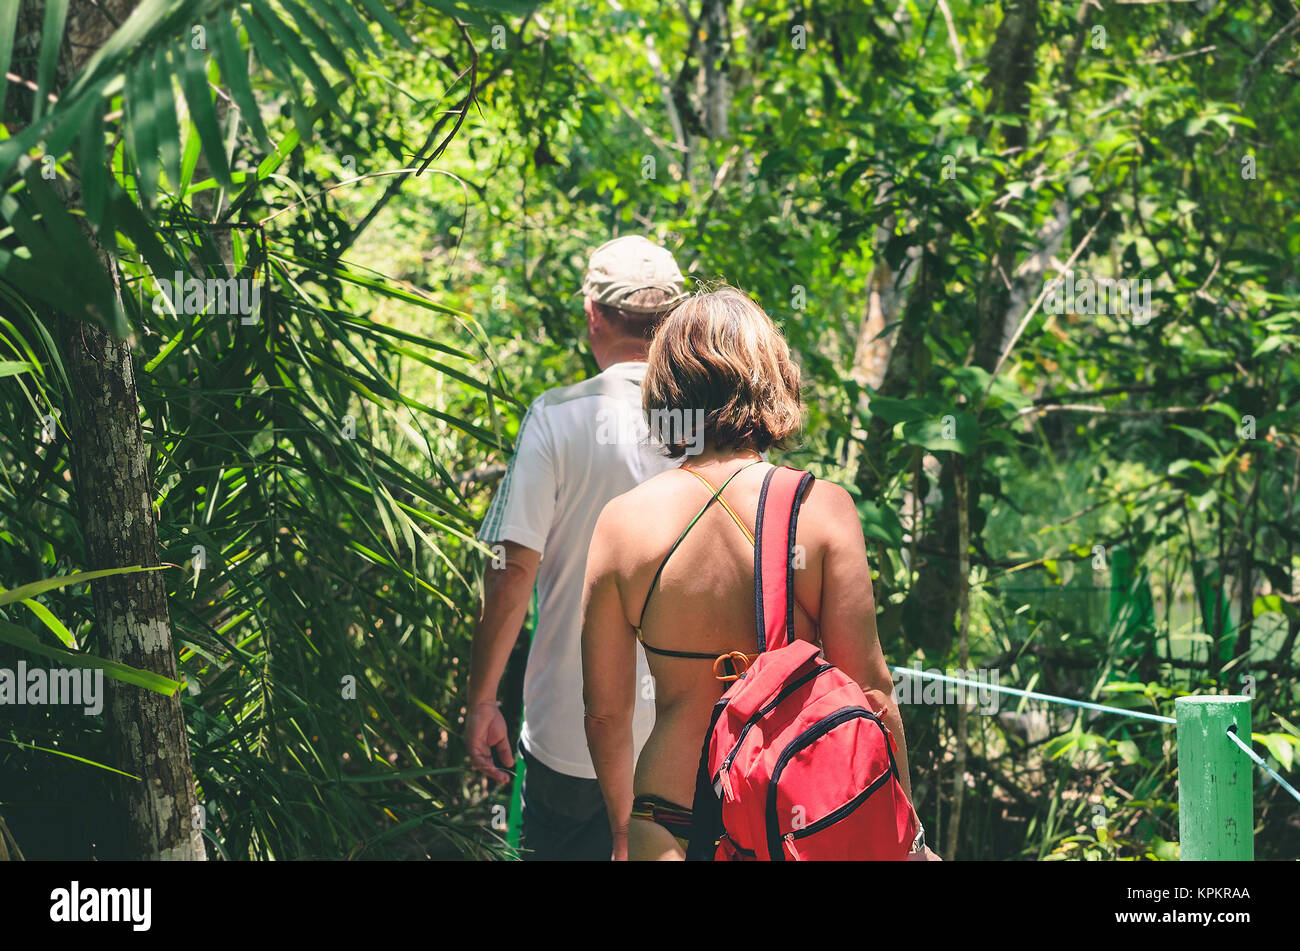 Tourists on a eco tour walking through a trail on the forest. Trail surrounded by nature on Bonito - MS, Brazil. - Stock Image